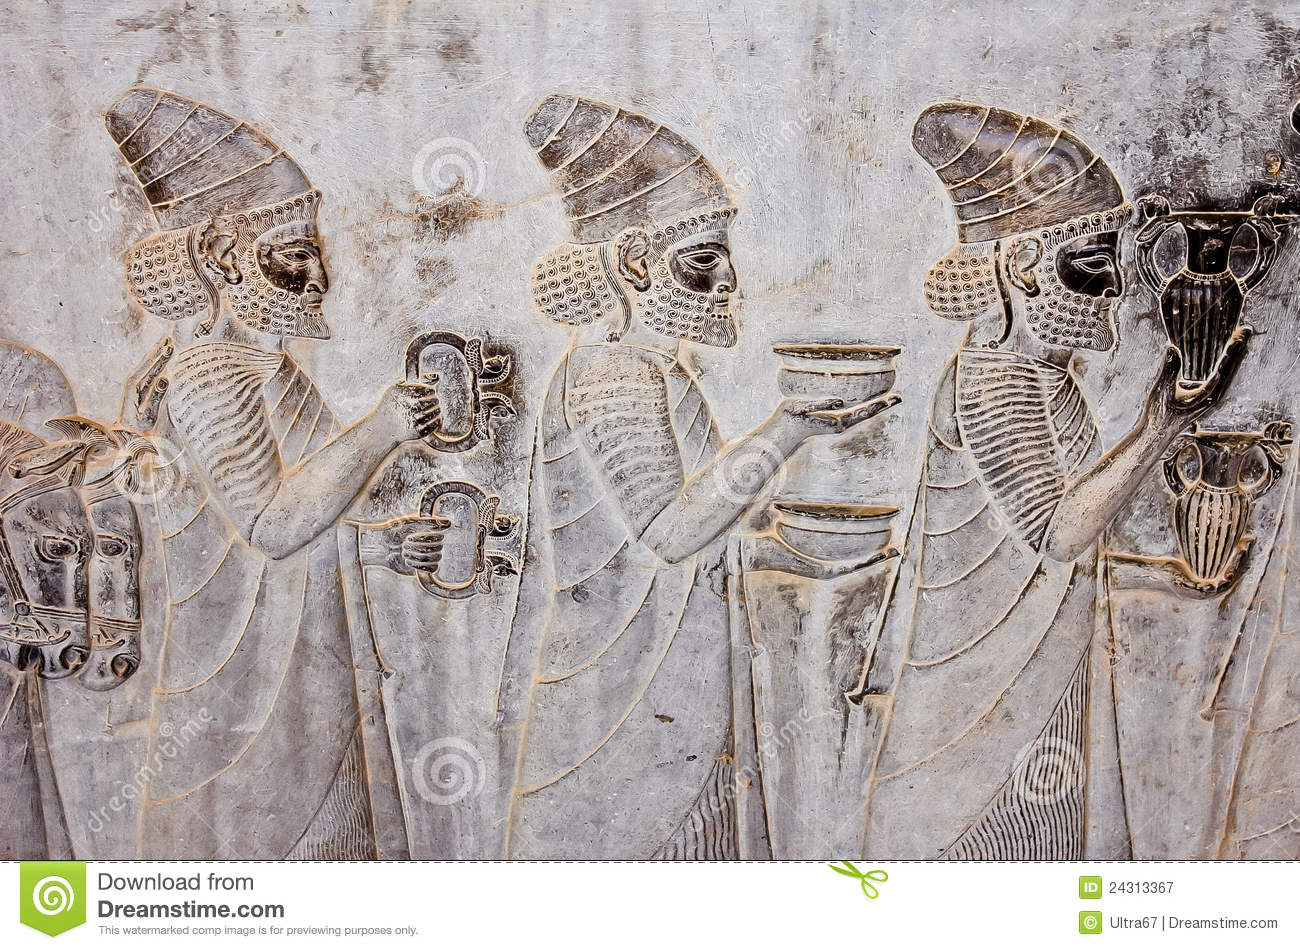 Ancient bas reliefs of persepolis royalty free stock